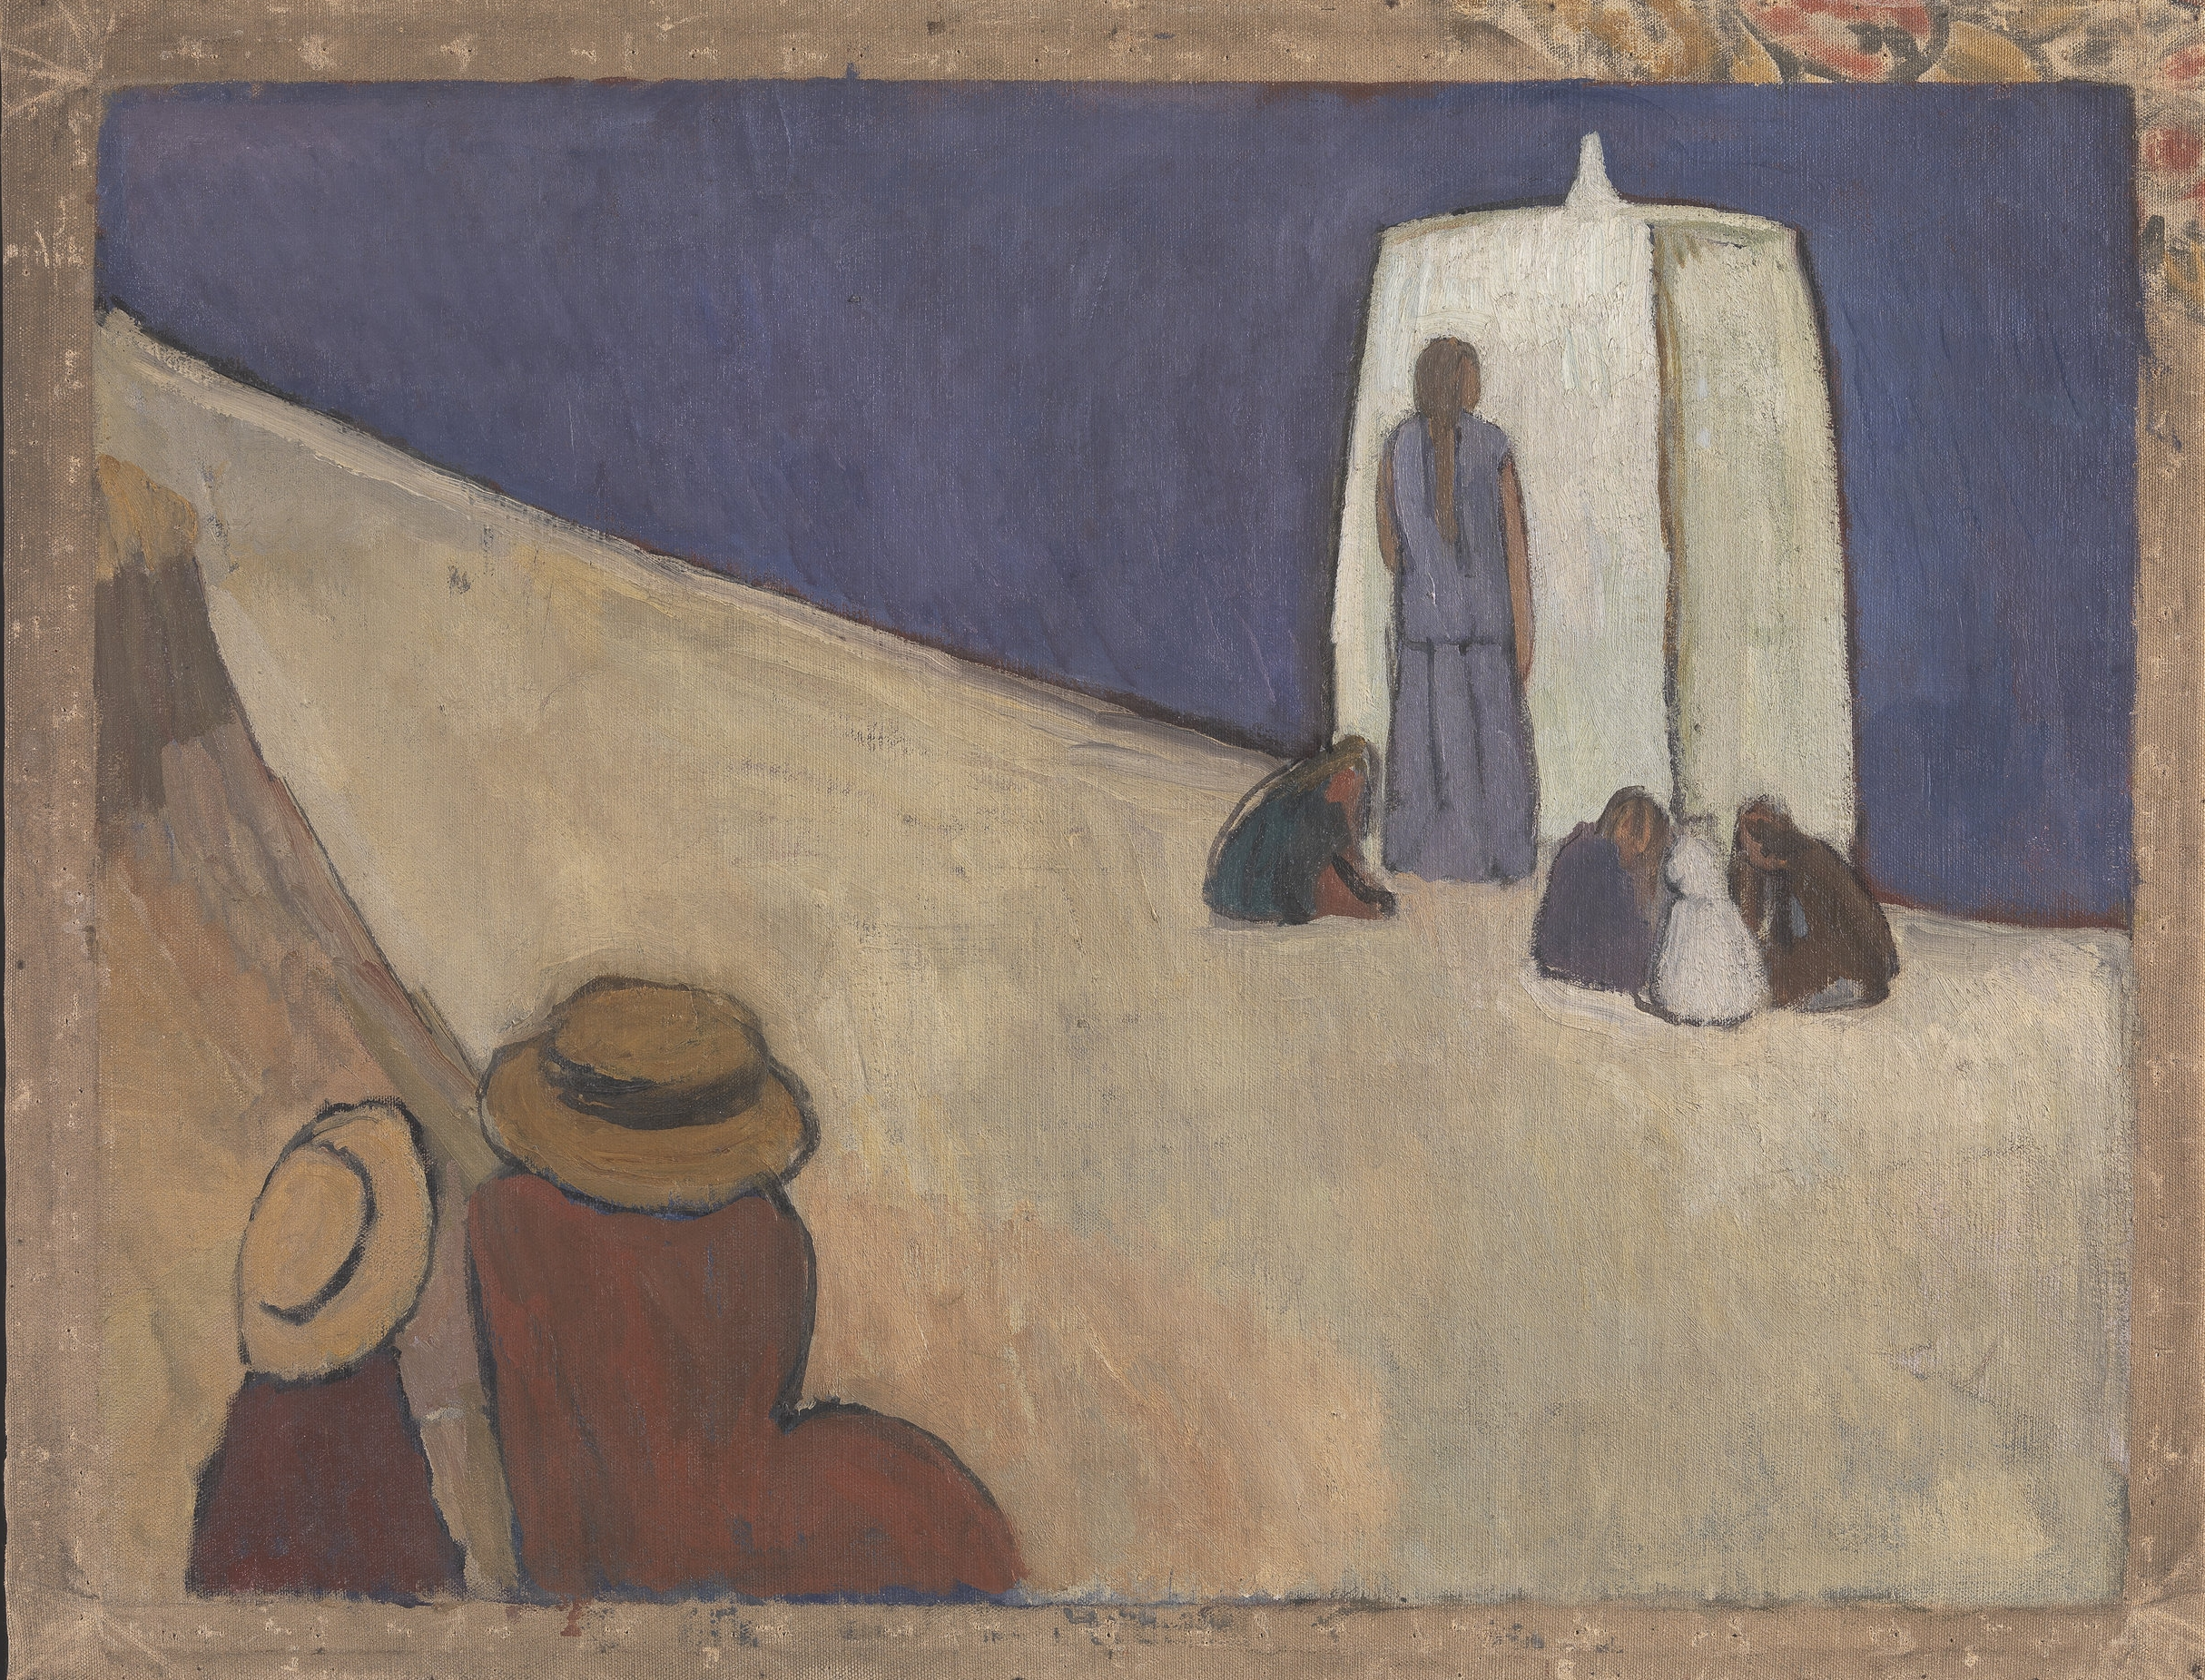 'Studland Beach. Verso: Group of Male Nudes by       Duncan Grant' (c.1912) Vanessa Bell 1879-1961        Reproduced with permission ©Tate, London 2017